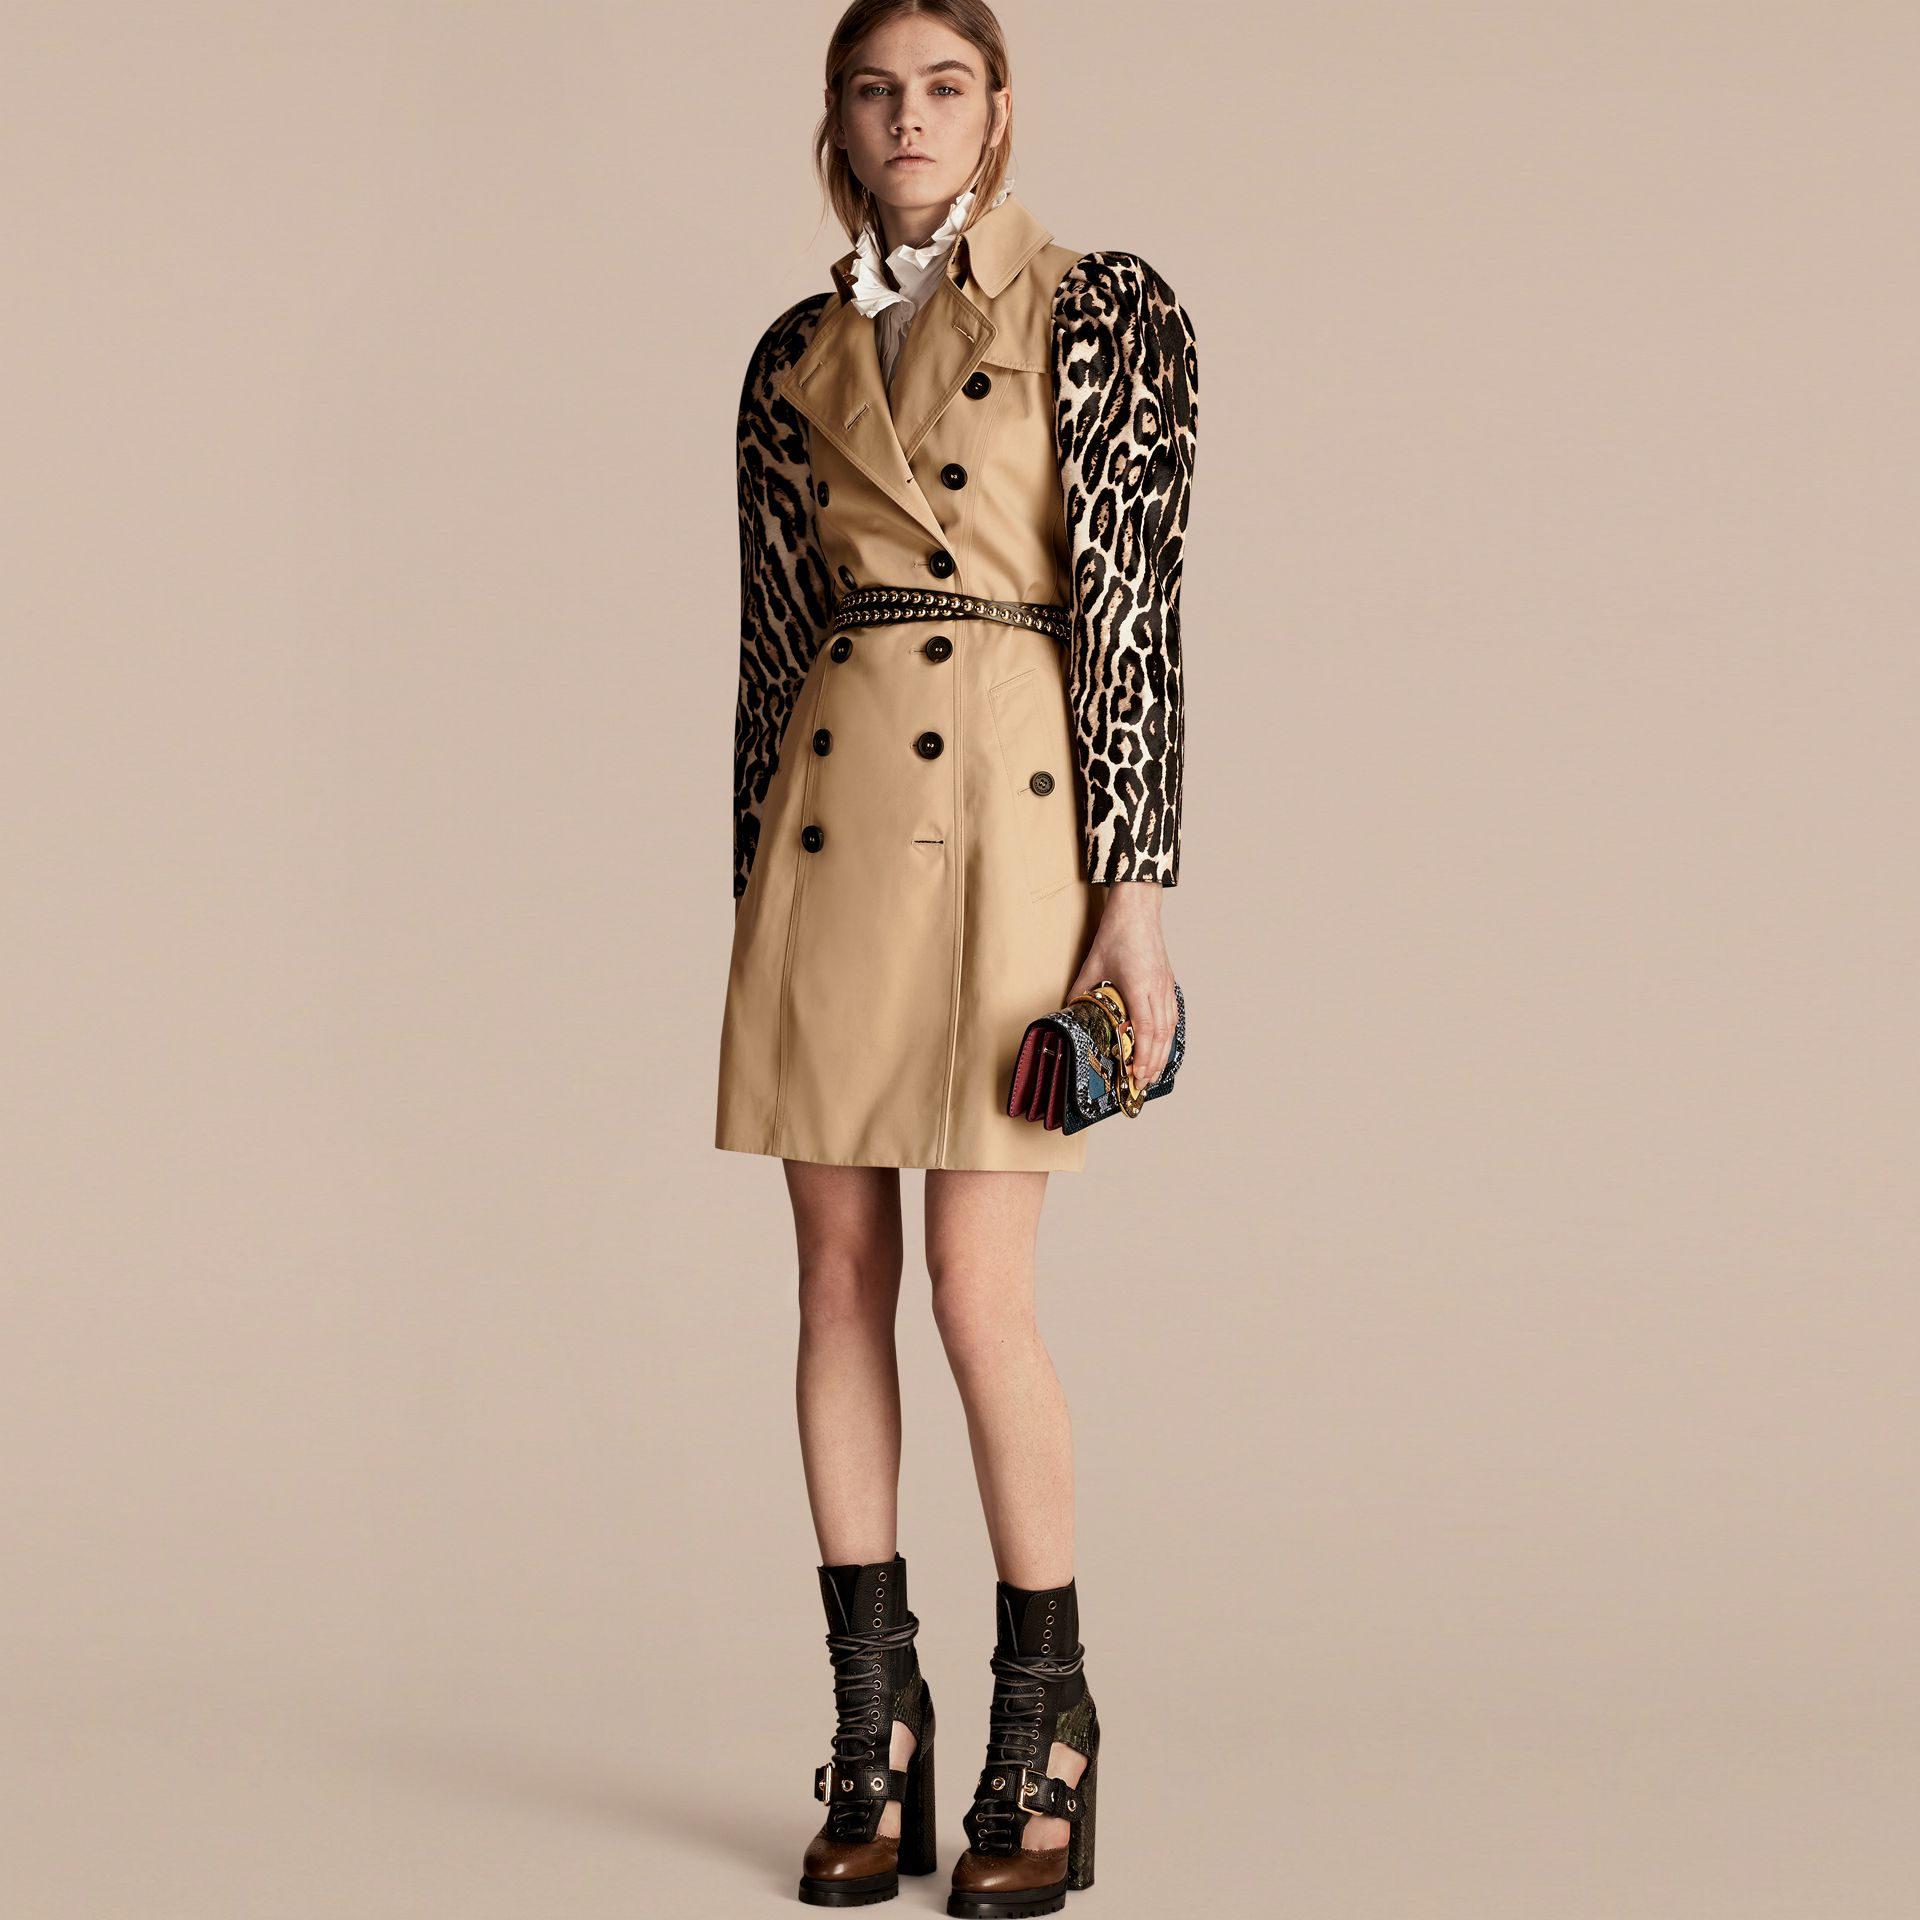 Cotton Gabardine Trench Coat with Leopard-print Sleeves - gallery image 1